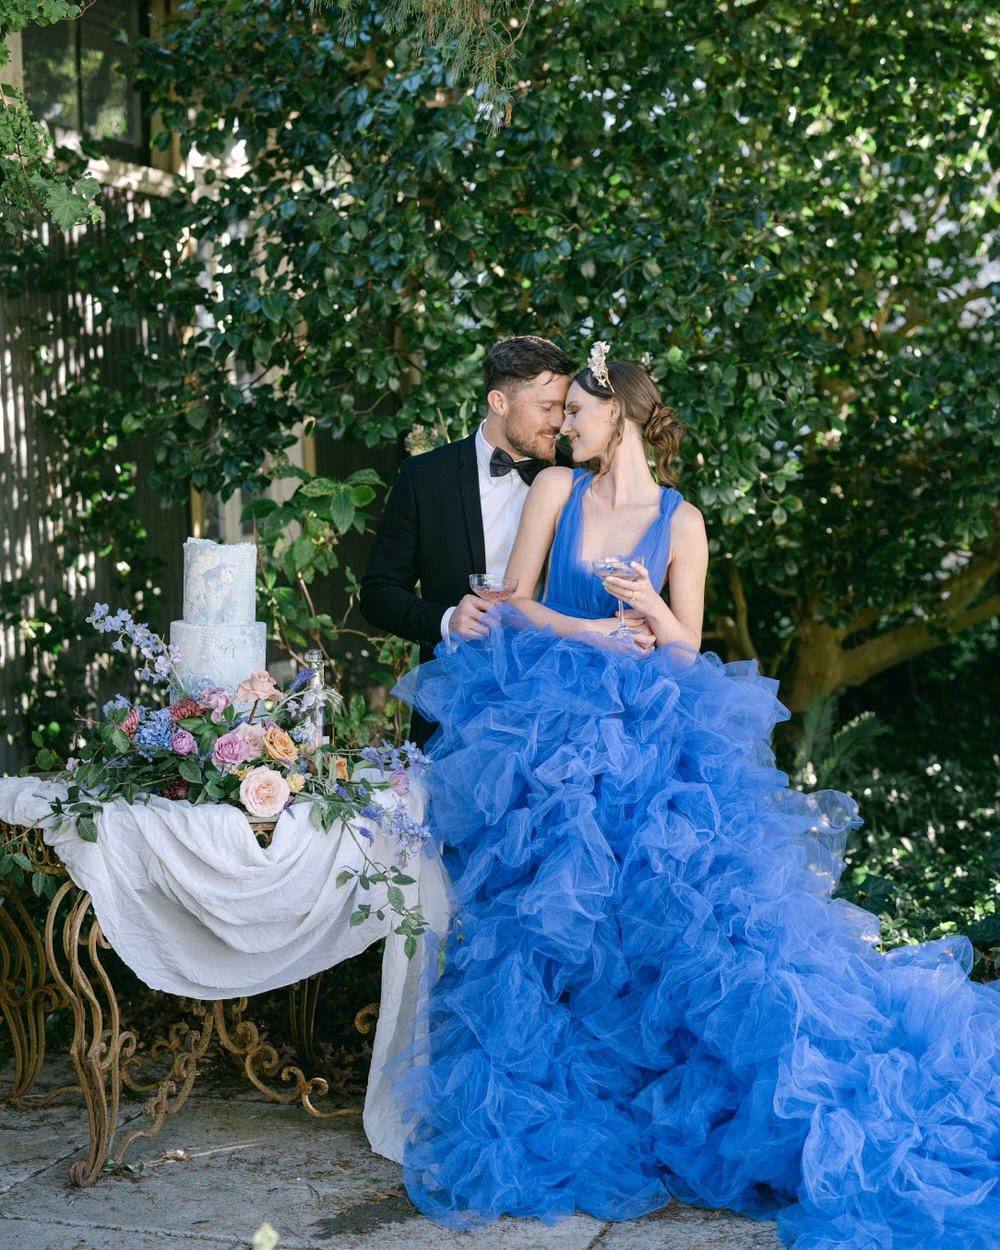 Renoir Inspired Editorial with Colored Tulle Dresses